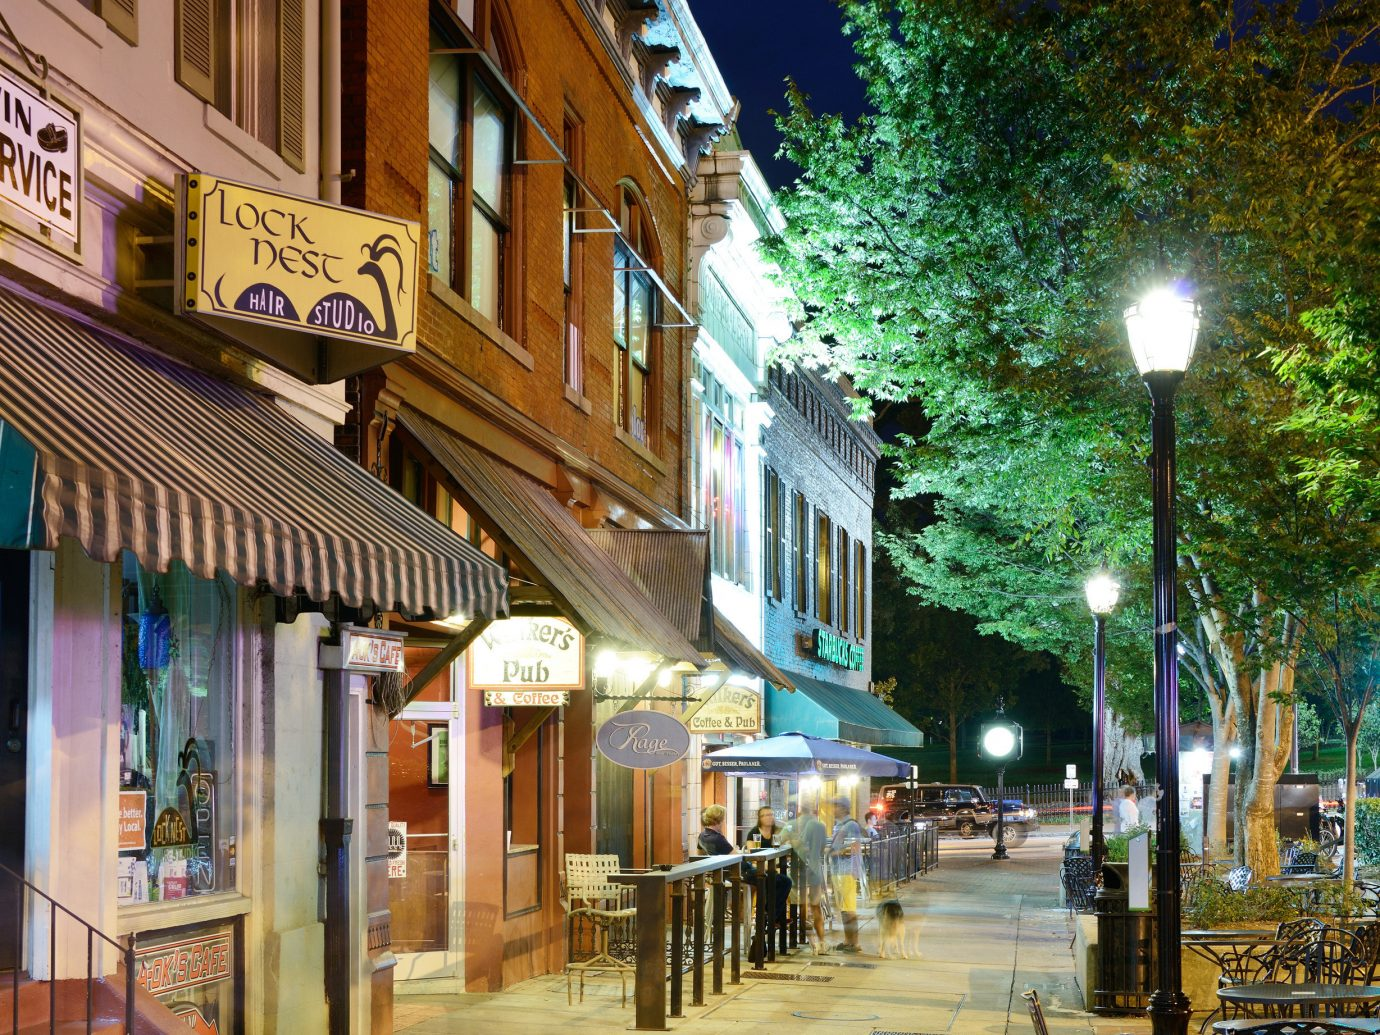 Trip Ideas building outdoor Town neighbourhood way street City scene mixed use Architecture Downtown night alley residential area road home evening house facade real estate sidewalk sky tree metropolitan area lane window